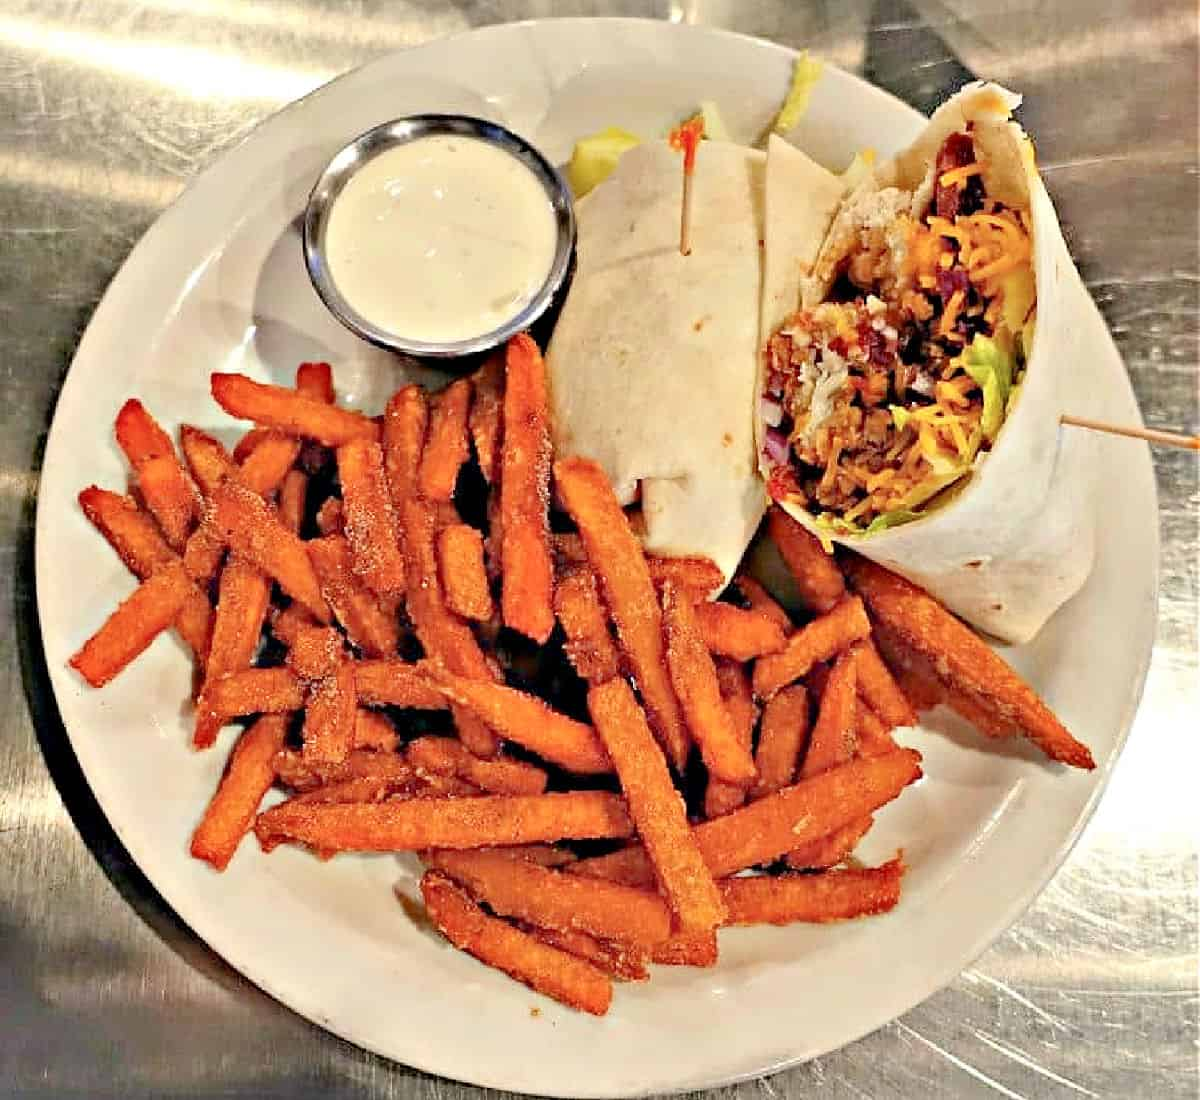 Plate with chicken wrap and side of sweet potato French fries.